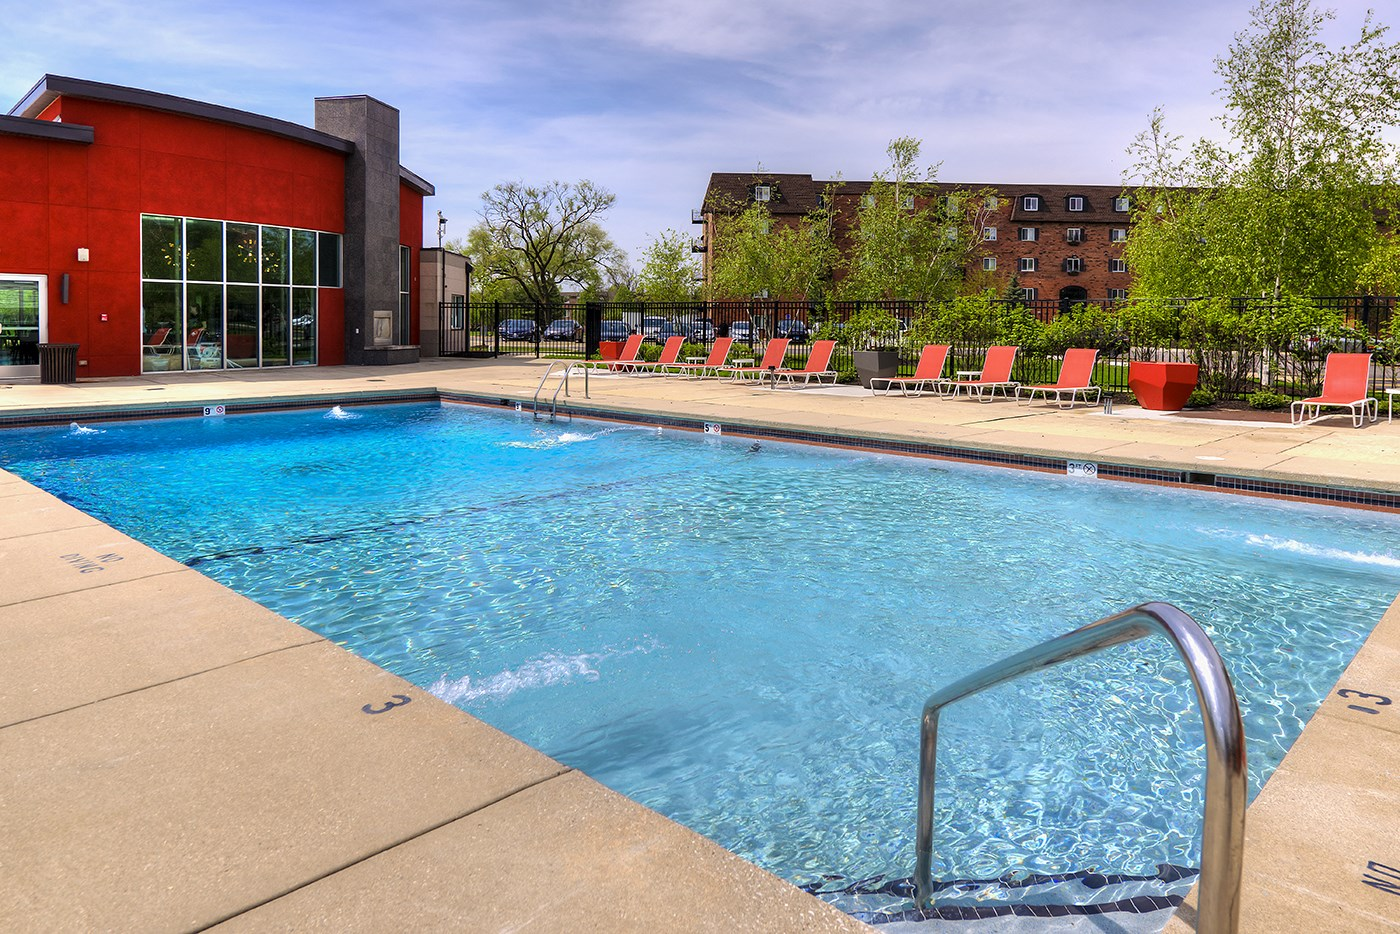 Pool Side Relaxing Area, at Carol Stream Crossing, Illinois, 60188